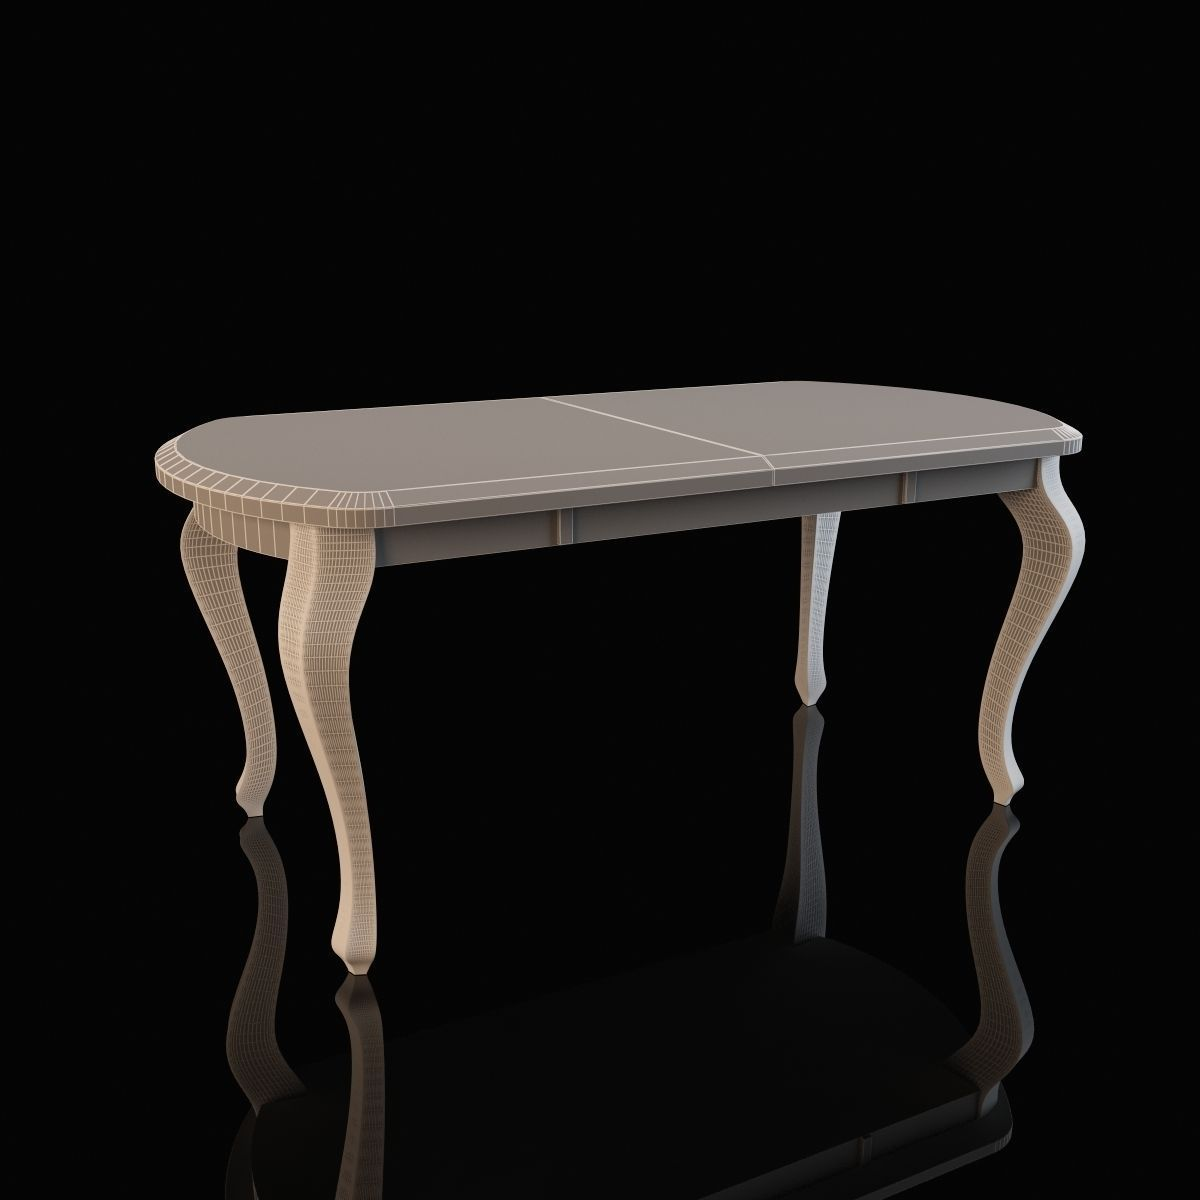 Dining table geneva 3d model max fbx for Dining table models